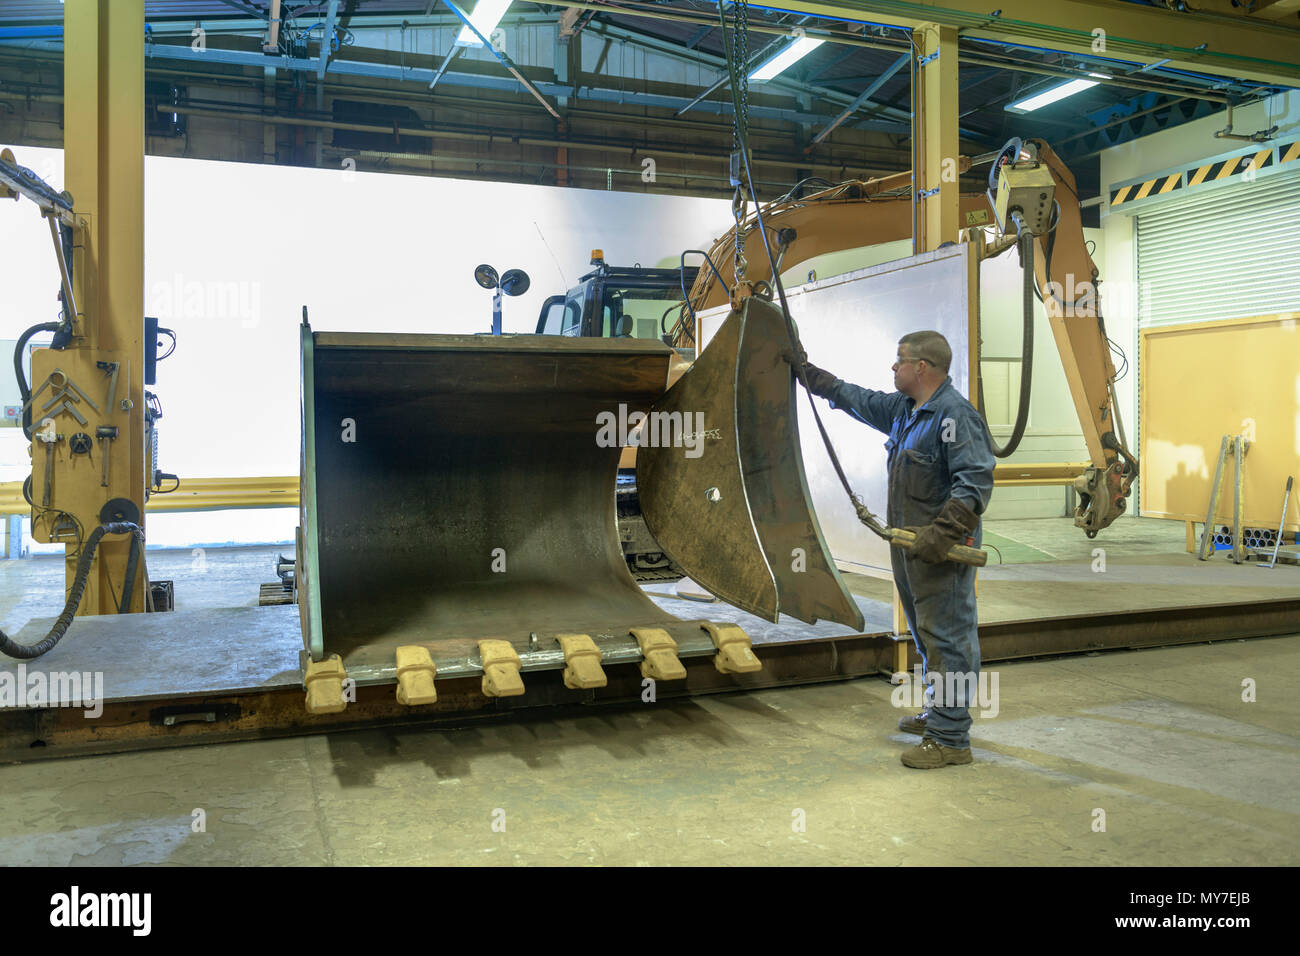 Worker assembling digger bucket in engineering factory - Stock Image